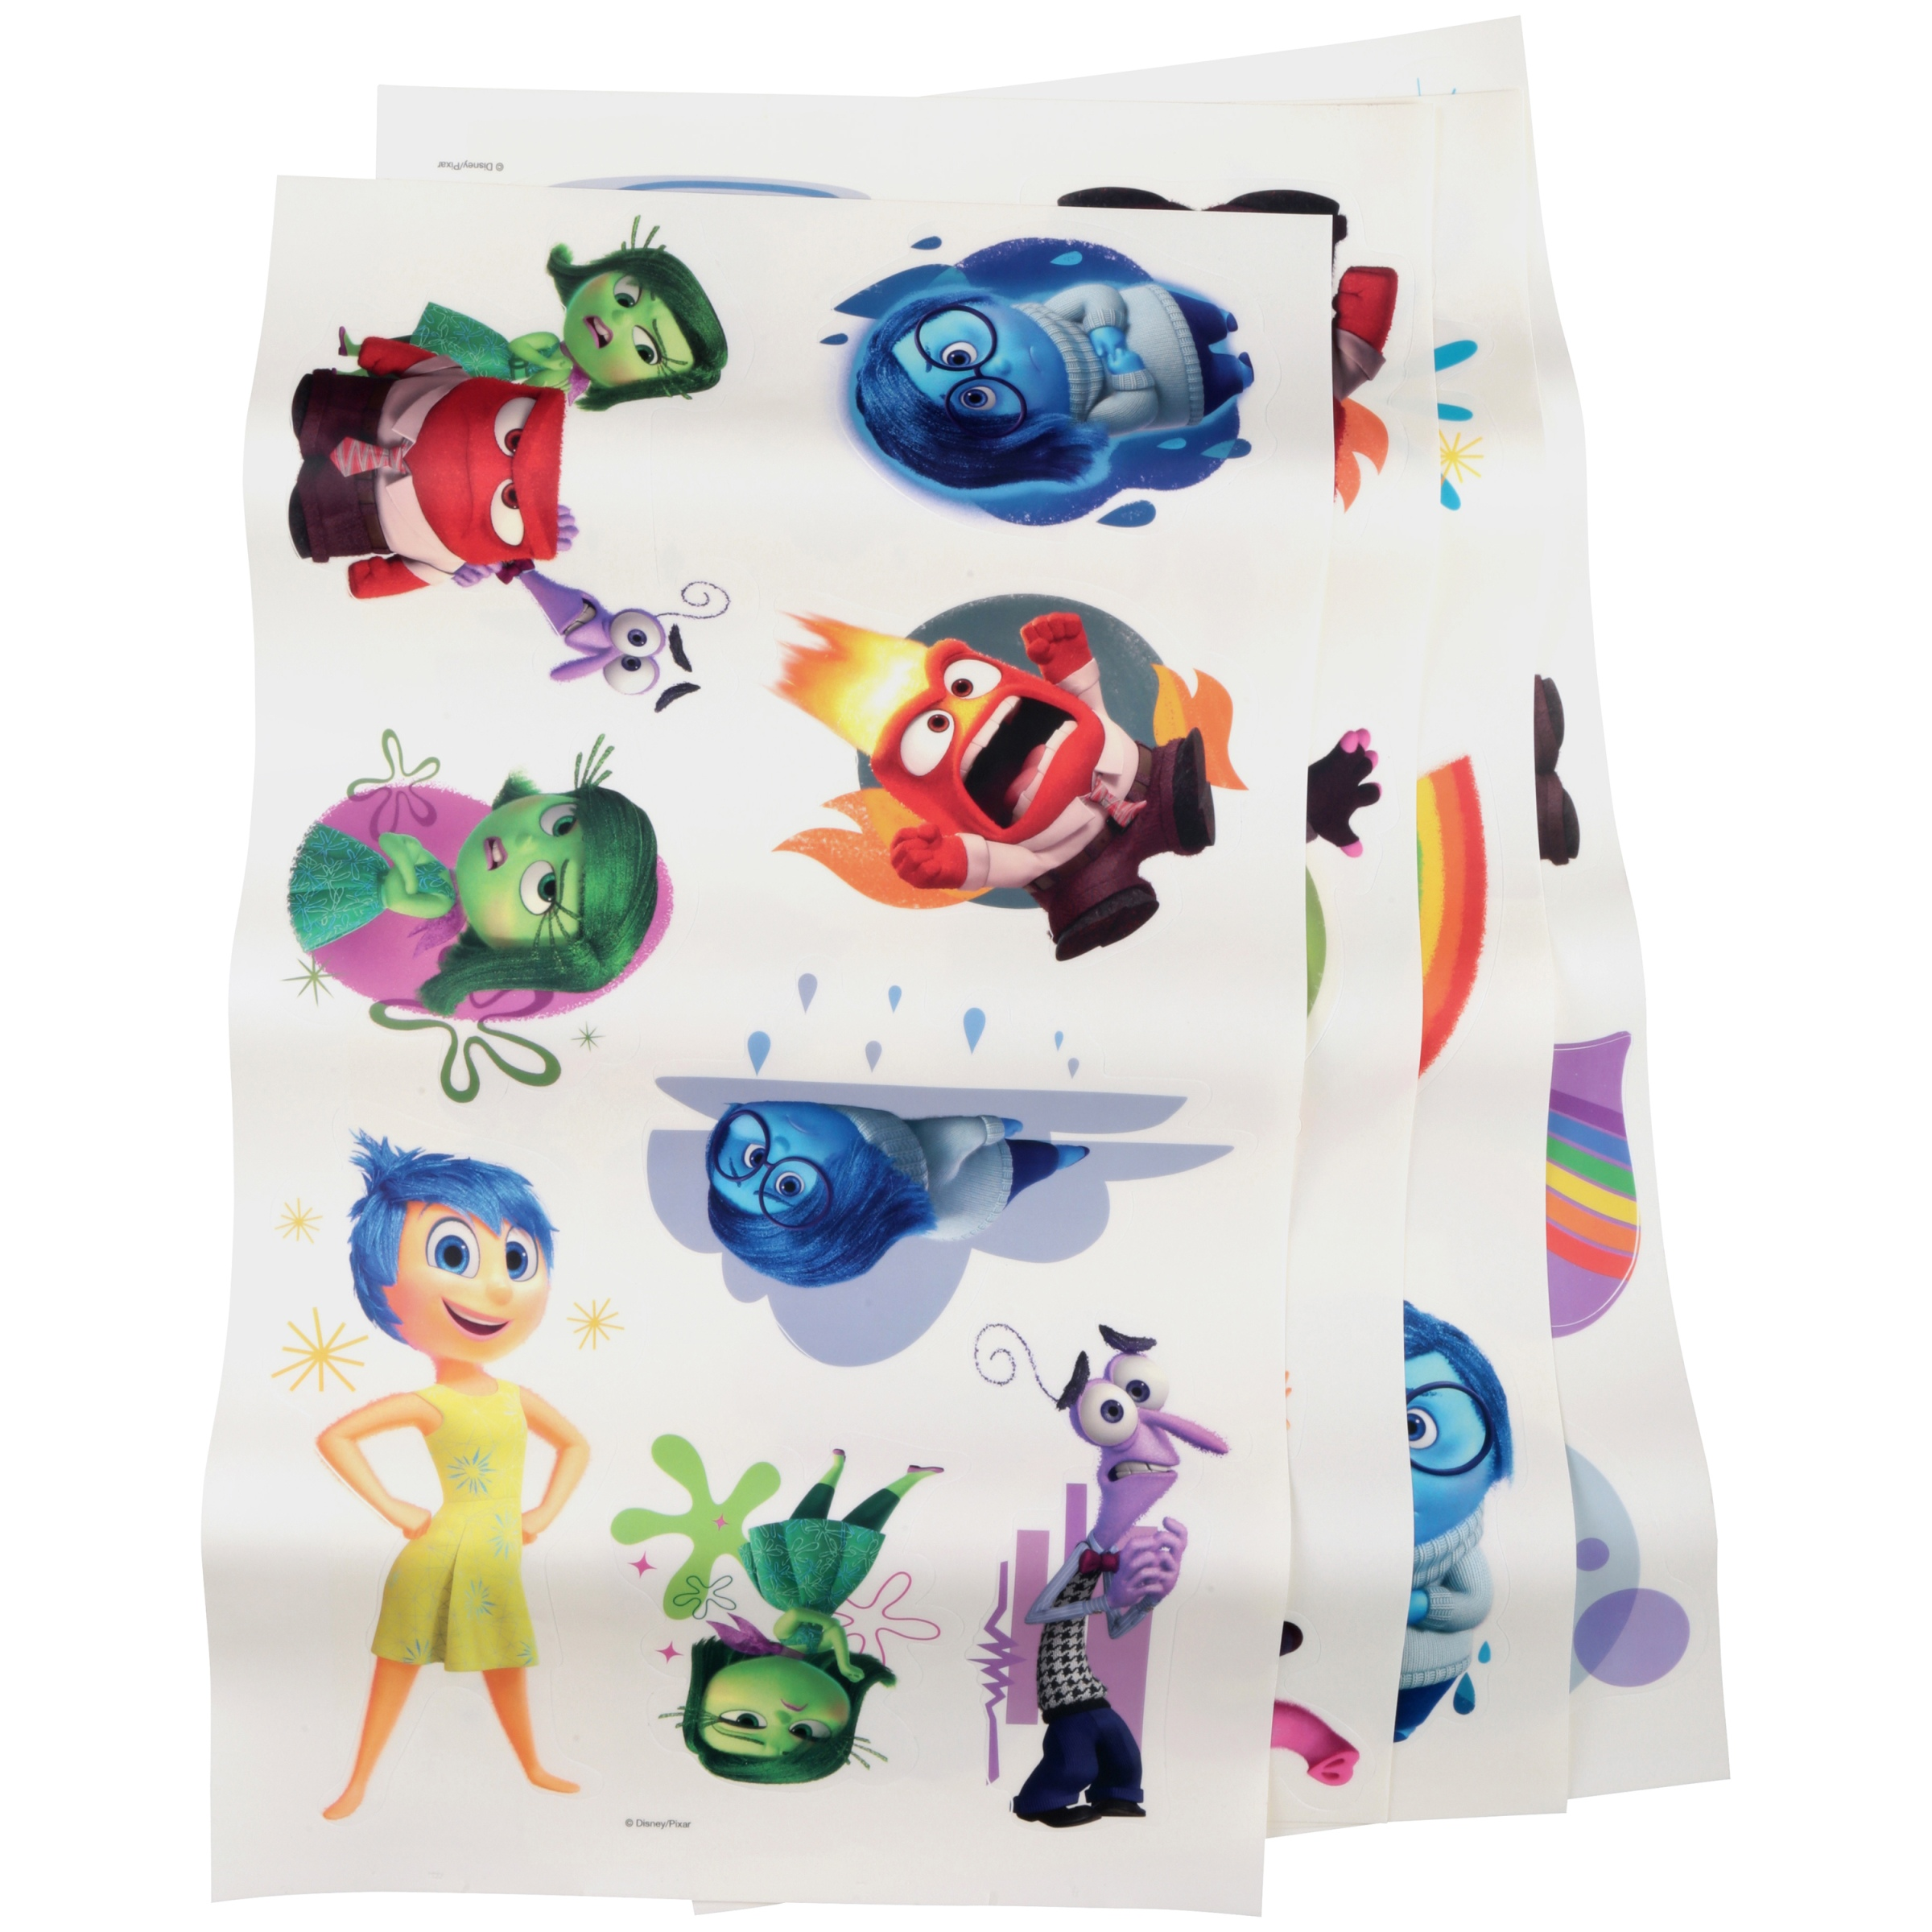 Disney Pixar® Inside Out Wall Decals 27 ct Pack